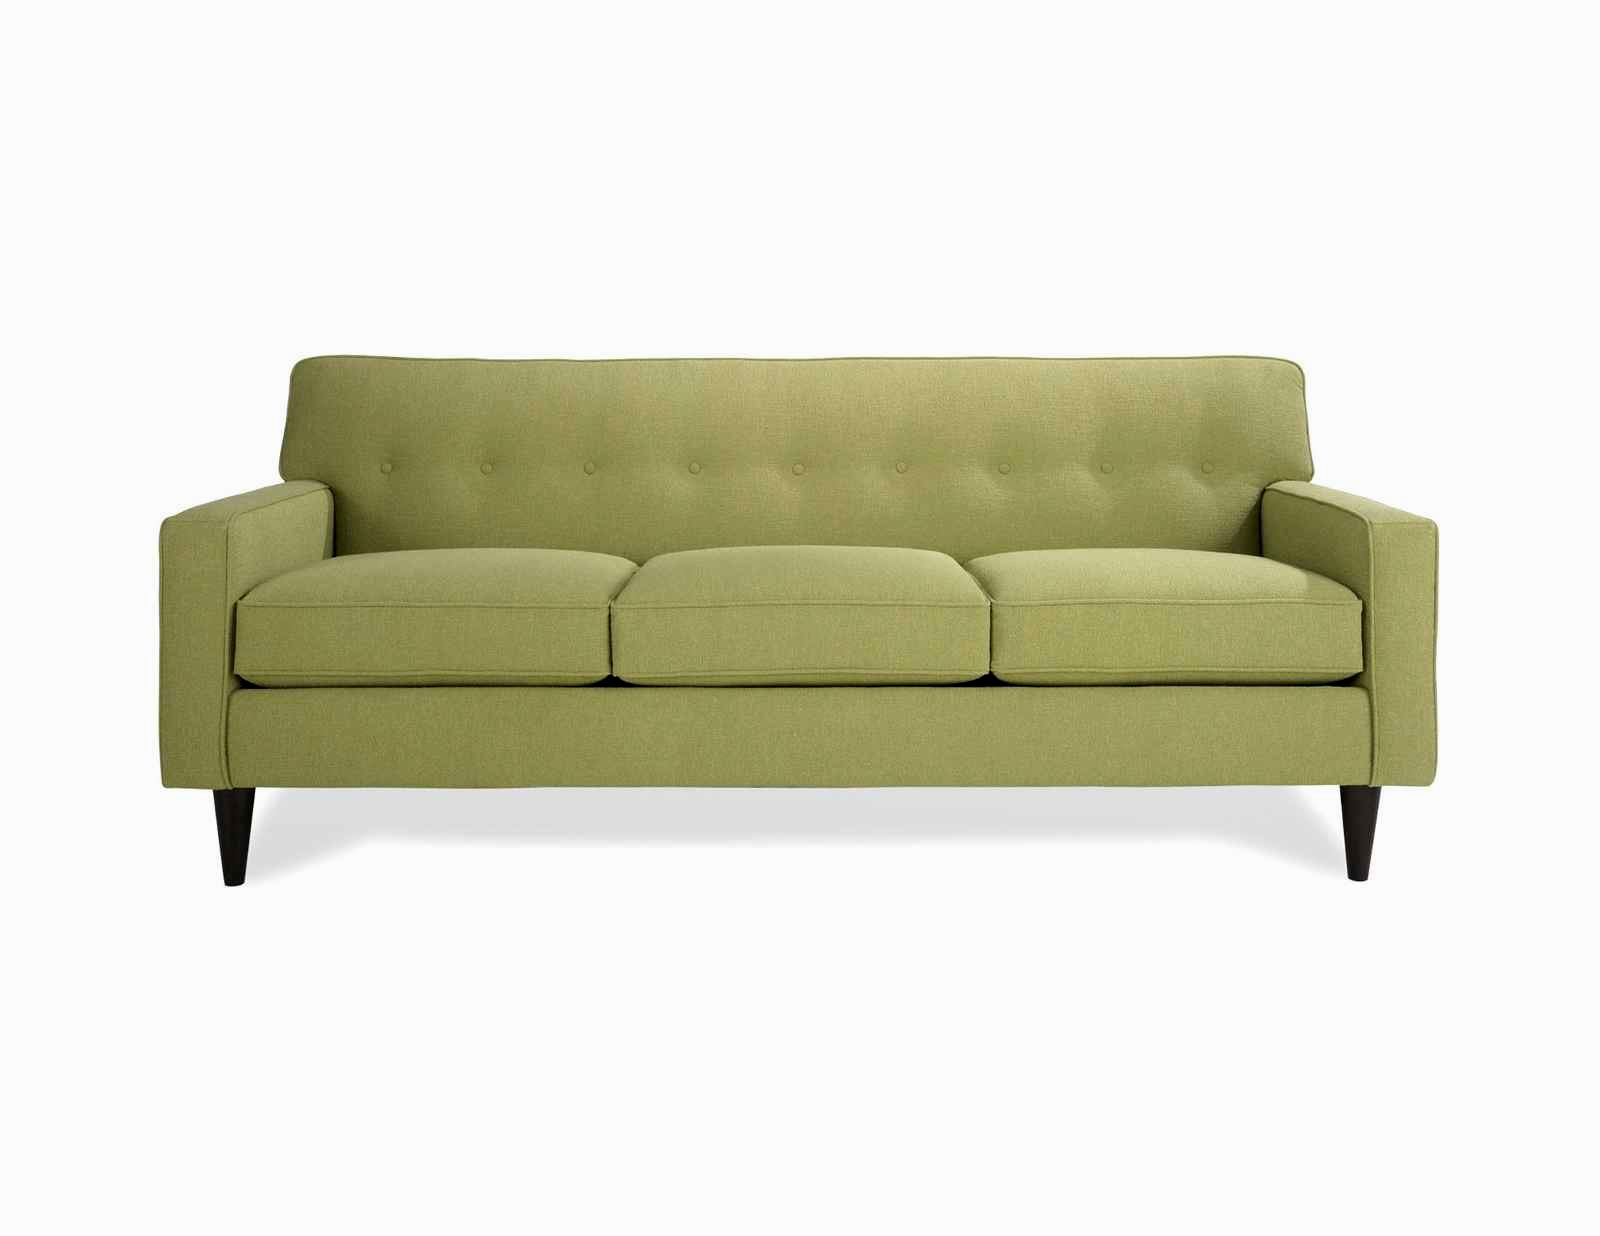 wonderful sofas for sale cheap ideas-Beautiful sofas for Sale Cheap Pattern